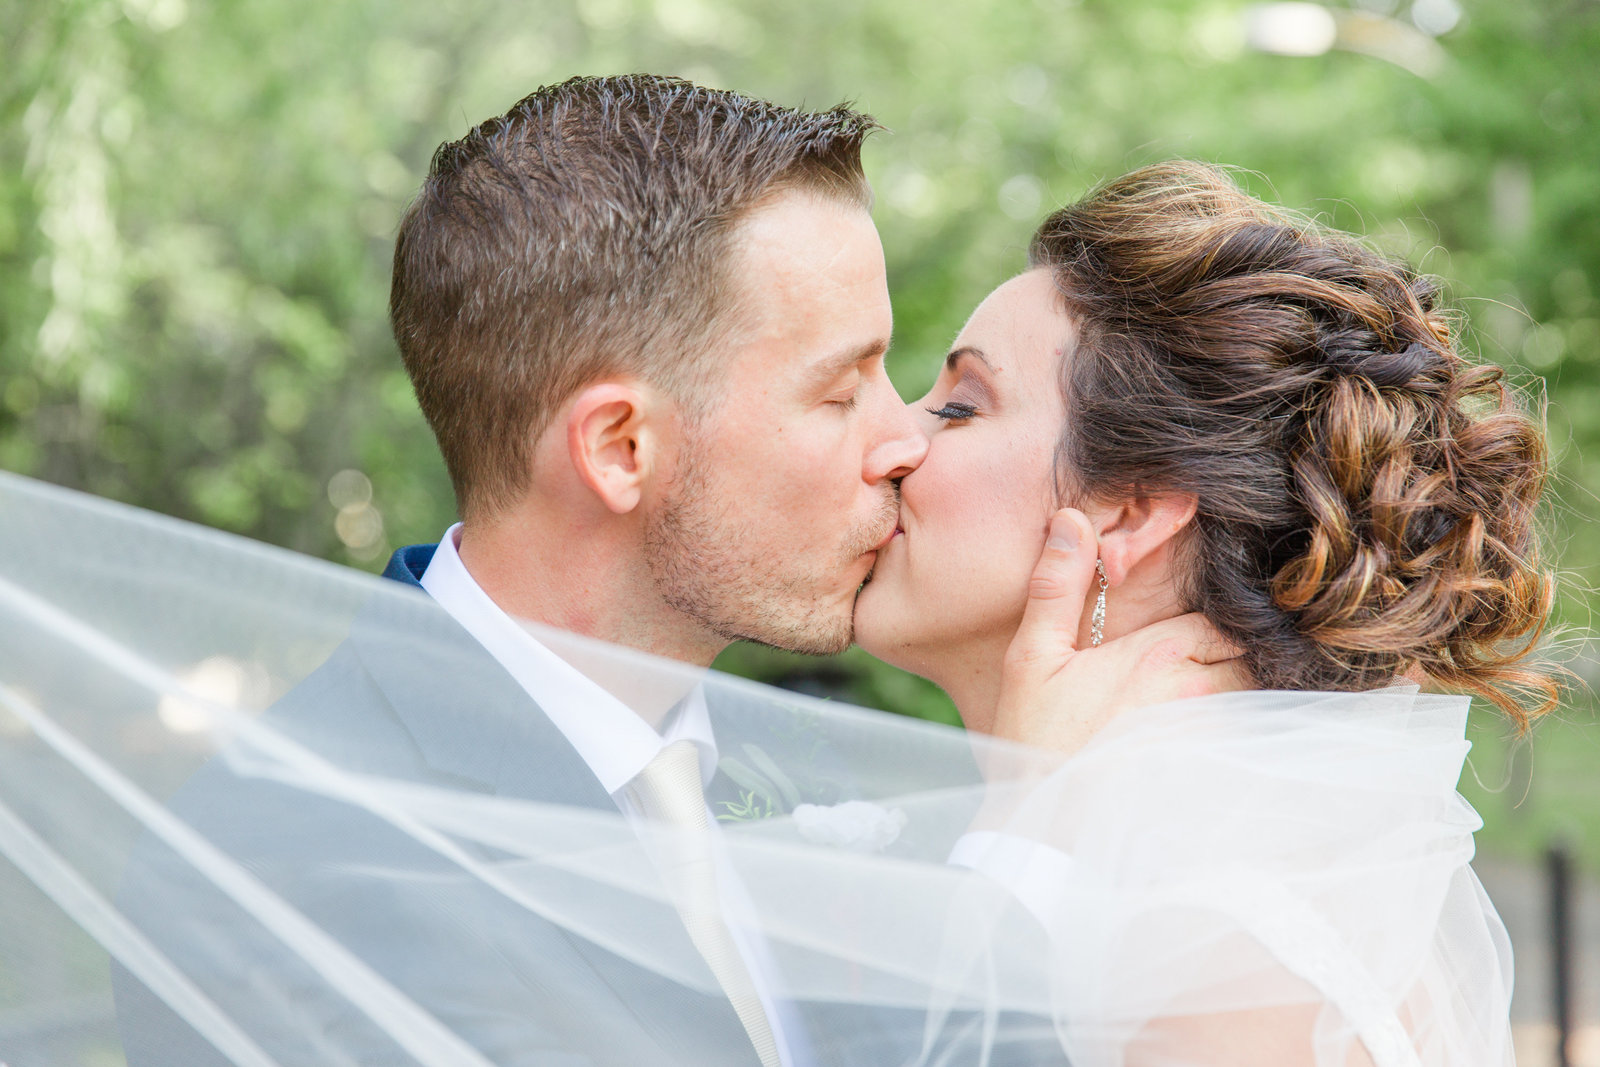 st-louis-wedding-photographer-stl-illinois-missouri-emotional-1